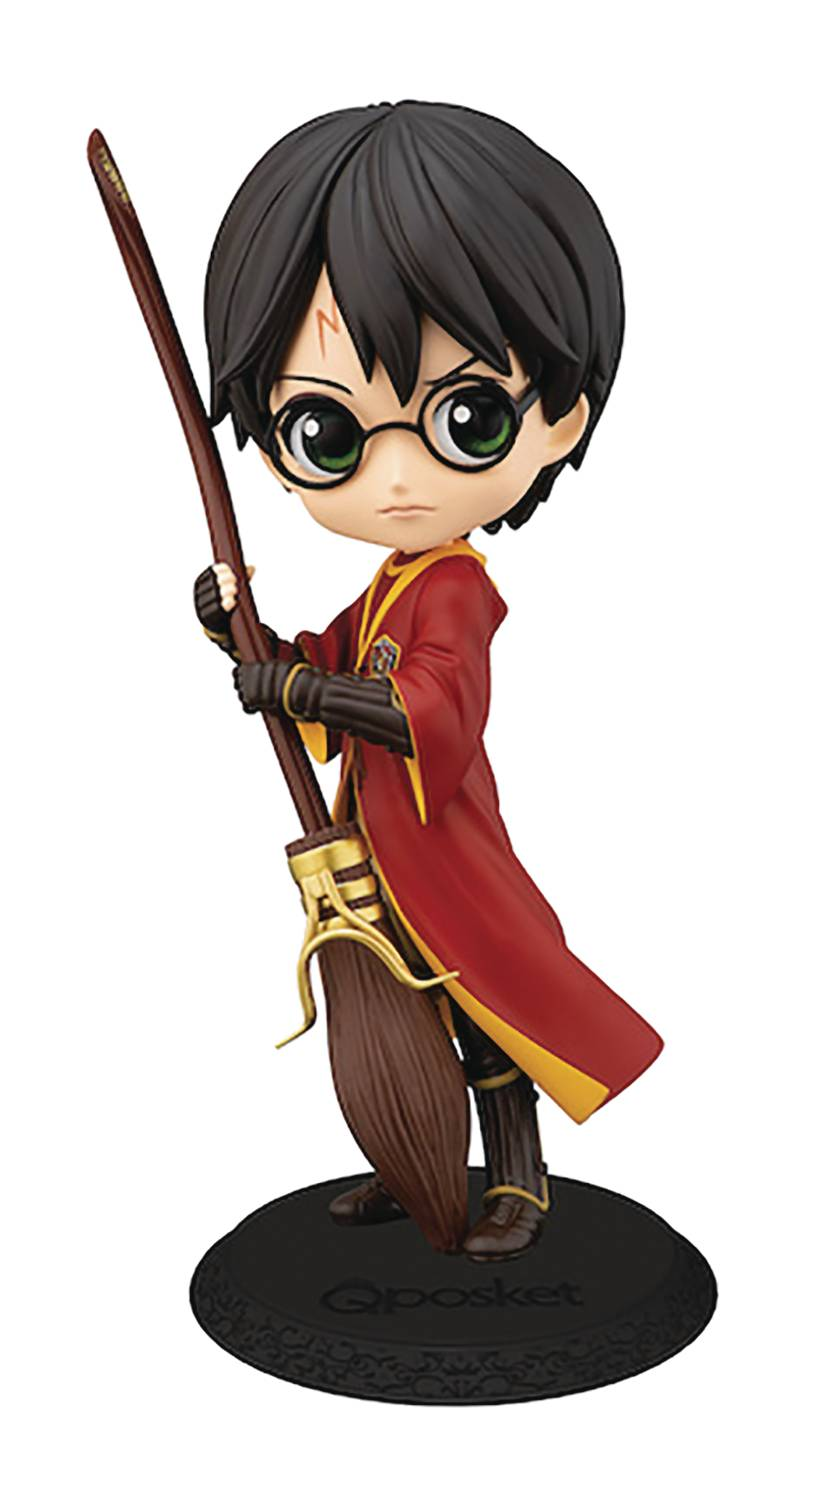 Banpresto Harry Potter Quidditch Q-Posket Figure